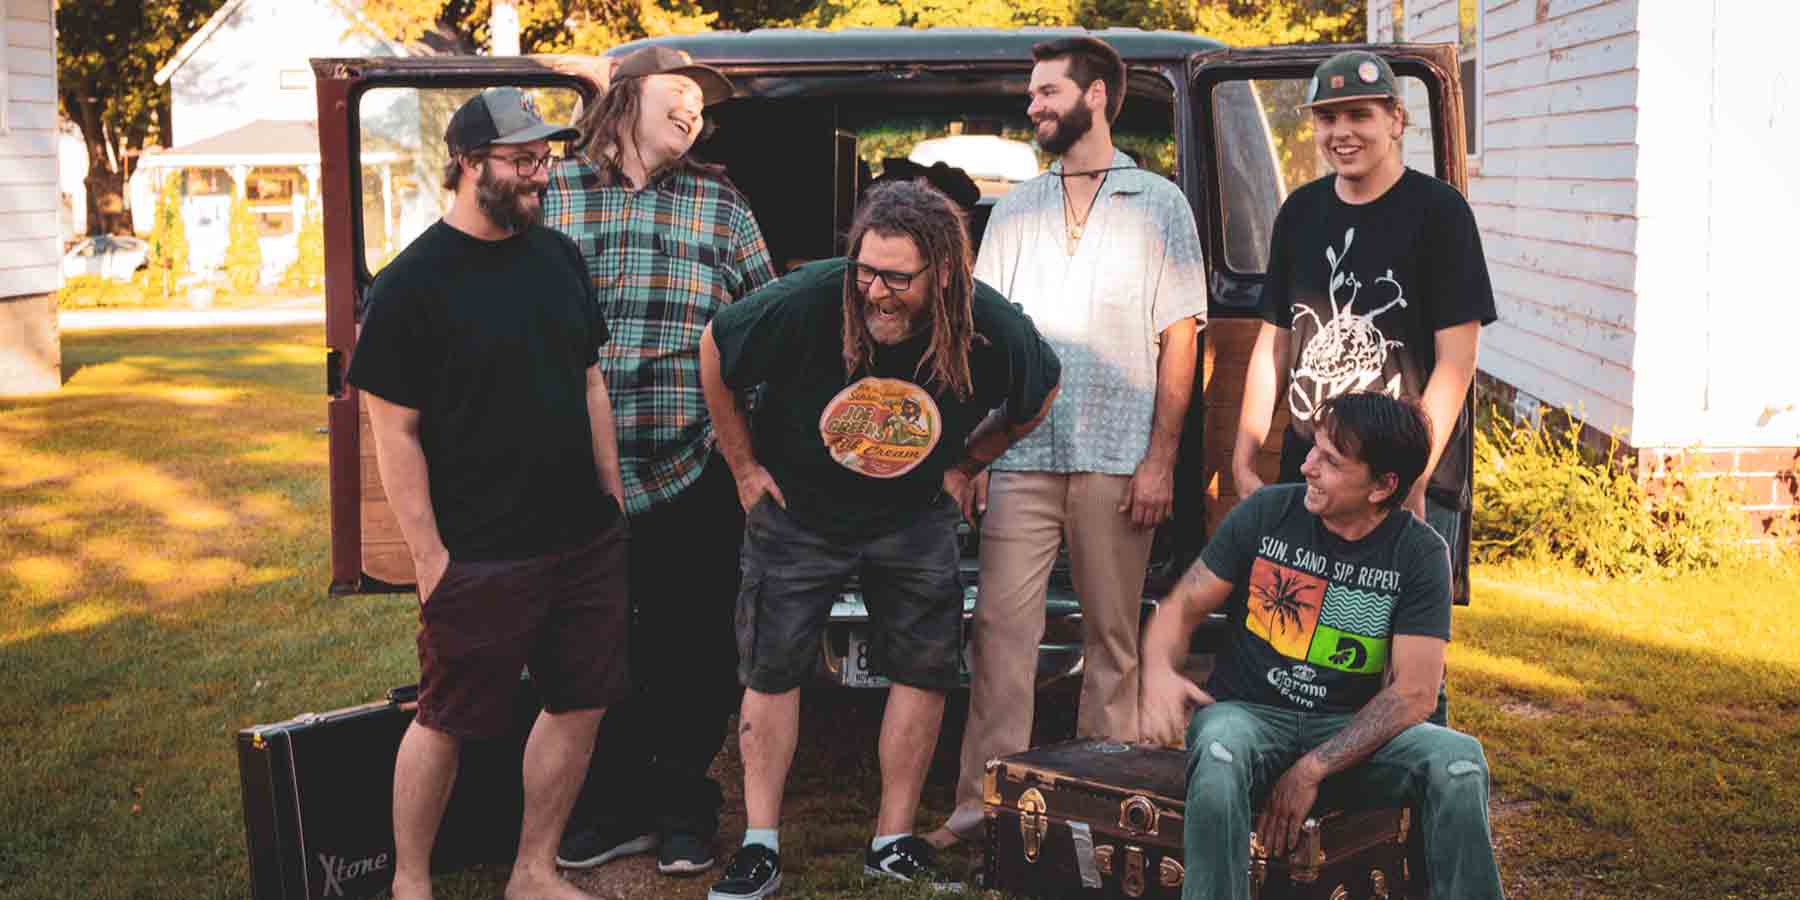 NUG Reggae Minnesota Band Jason Tucker Mack Buchan Connor Cregeen Bob Adam Smith